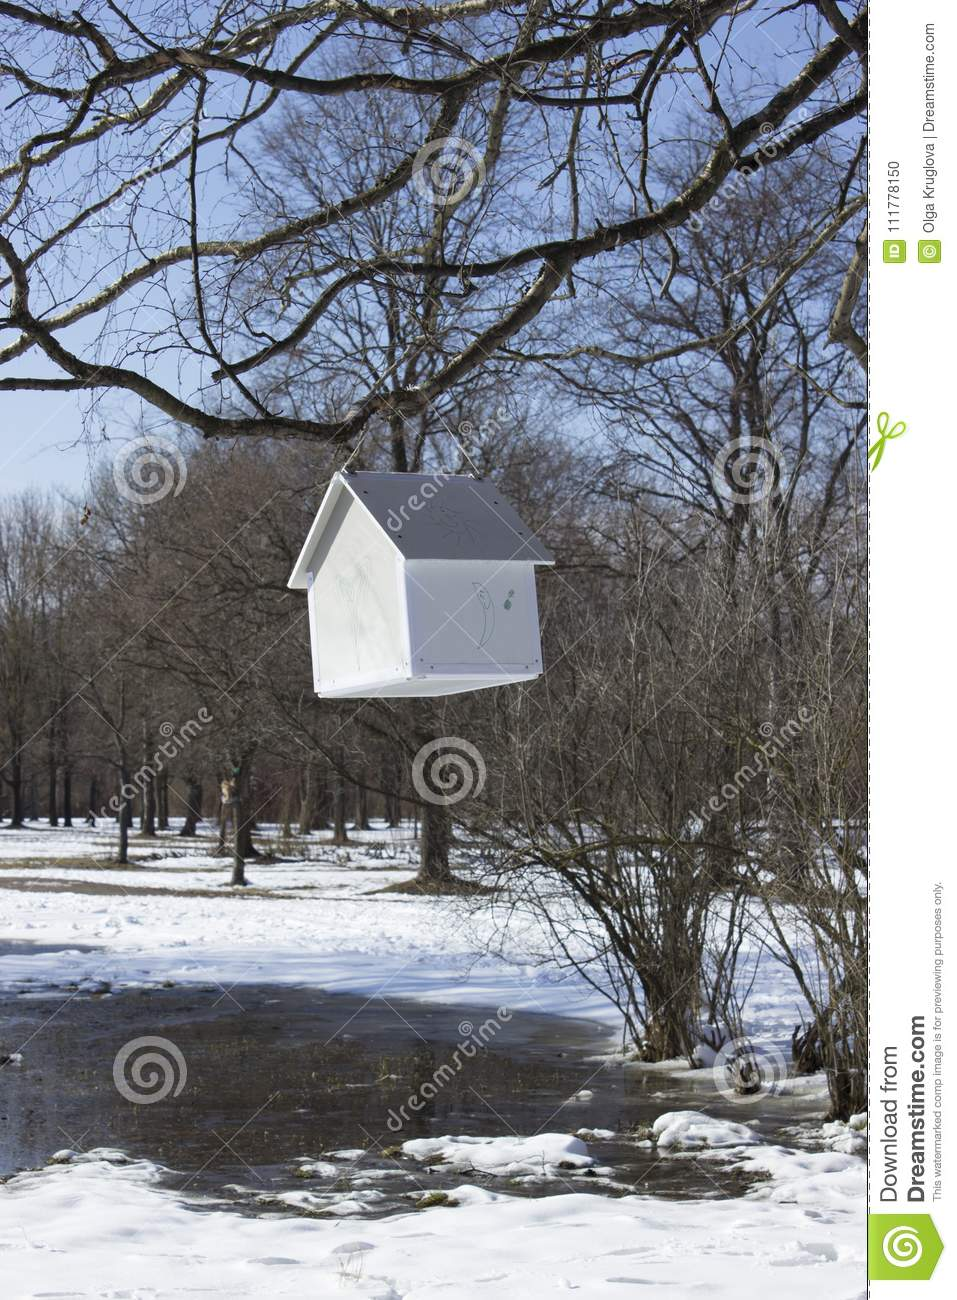 House-feeder hanging from a tree